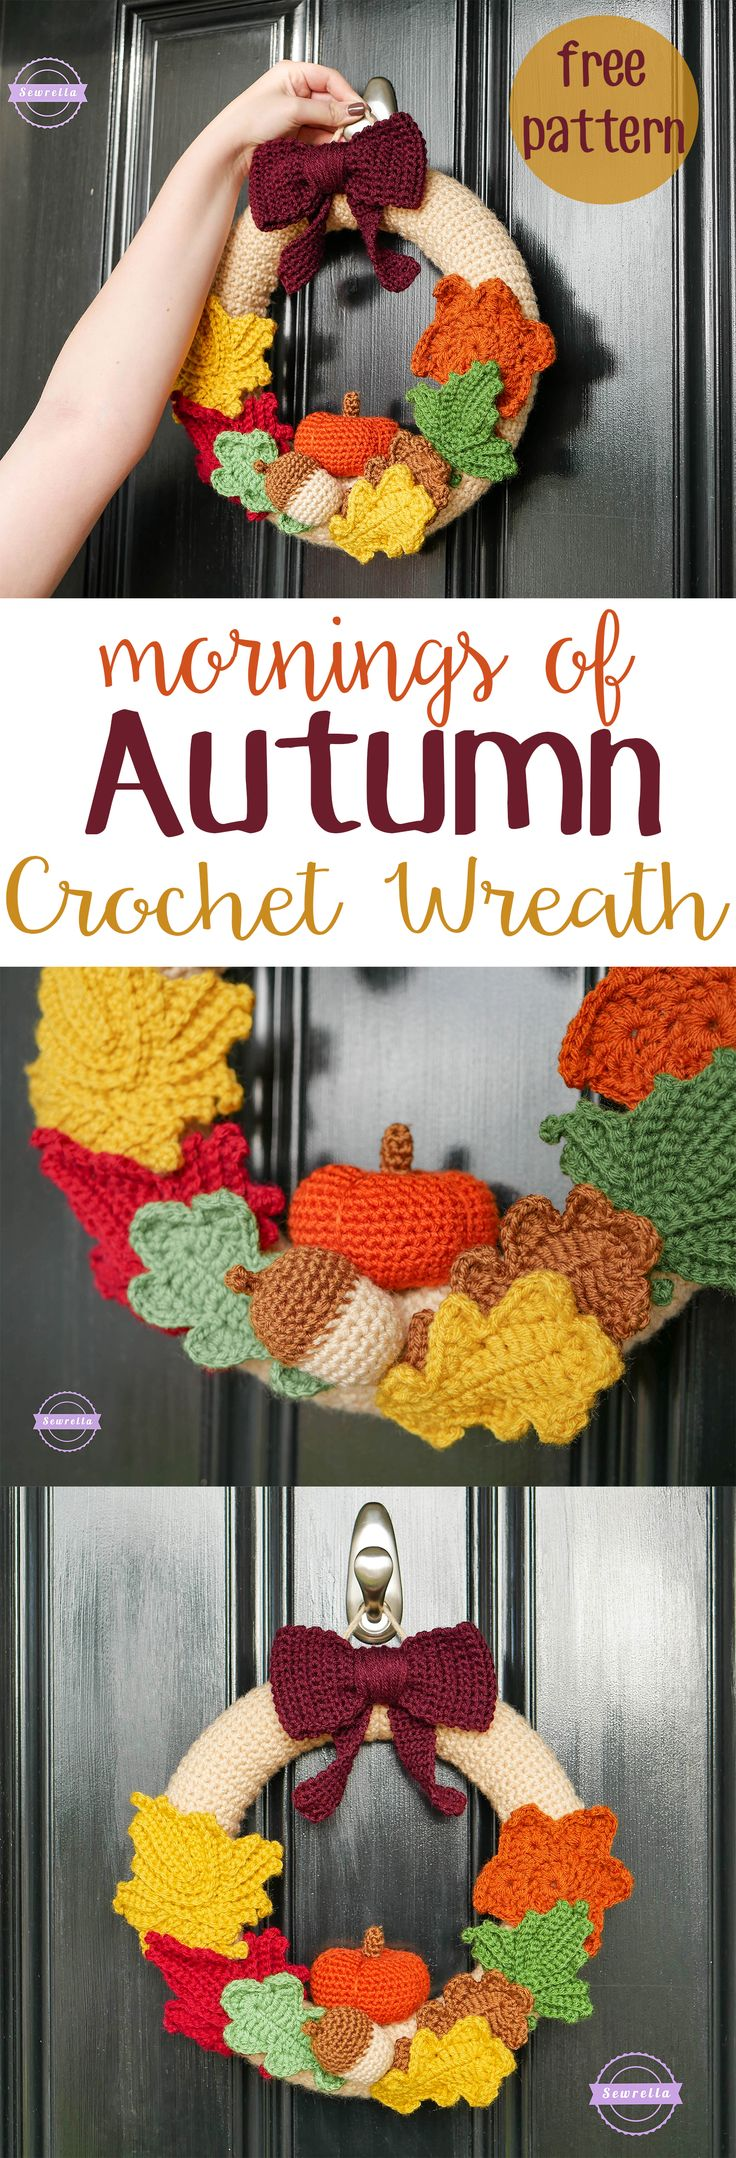 482 best Crocheted Wreaths images on Pinterest | Crochet wreath ...